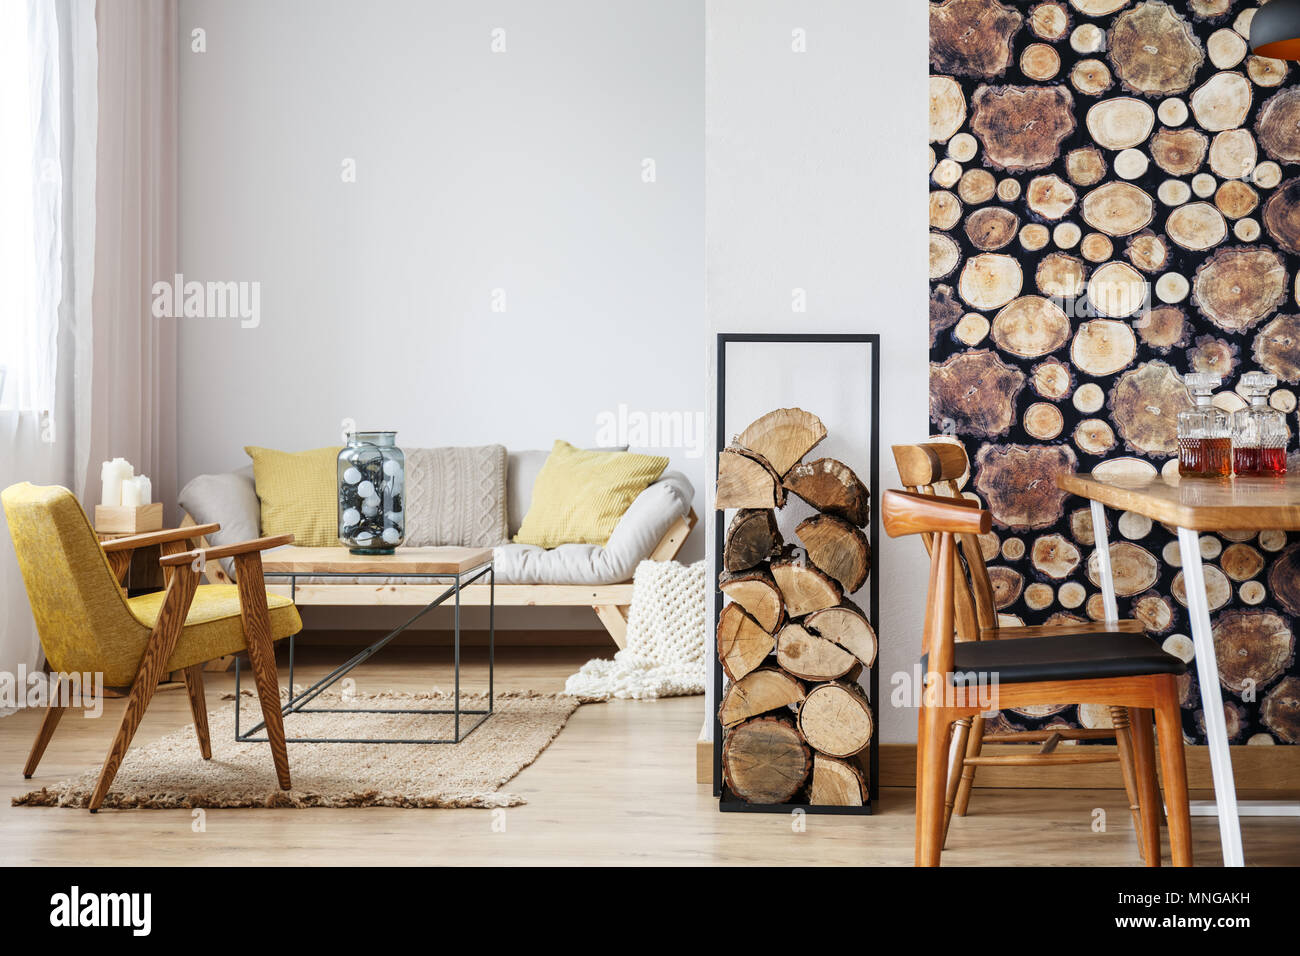 Designer armchair, sofa, firewood and coffee table in warm cozy apartment with open dining area and log pile wallpaper - Stock Image